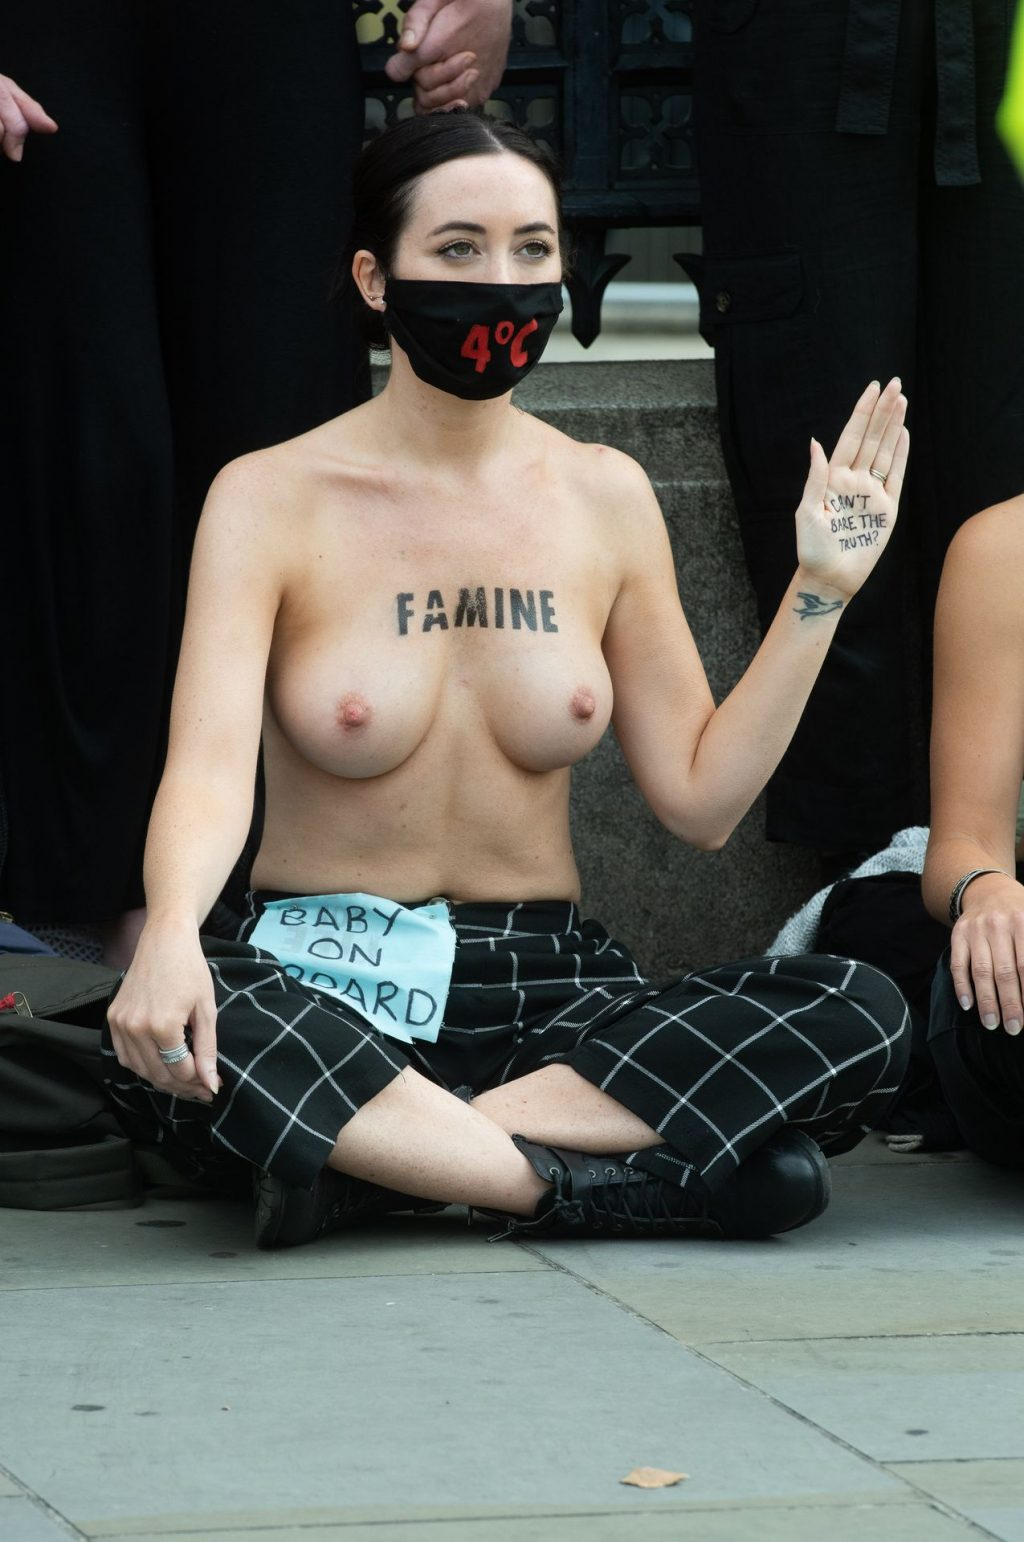 Extinction Rebellion Parliament Protest (30 Nude Photos)